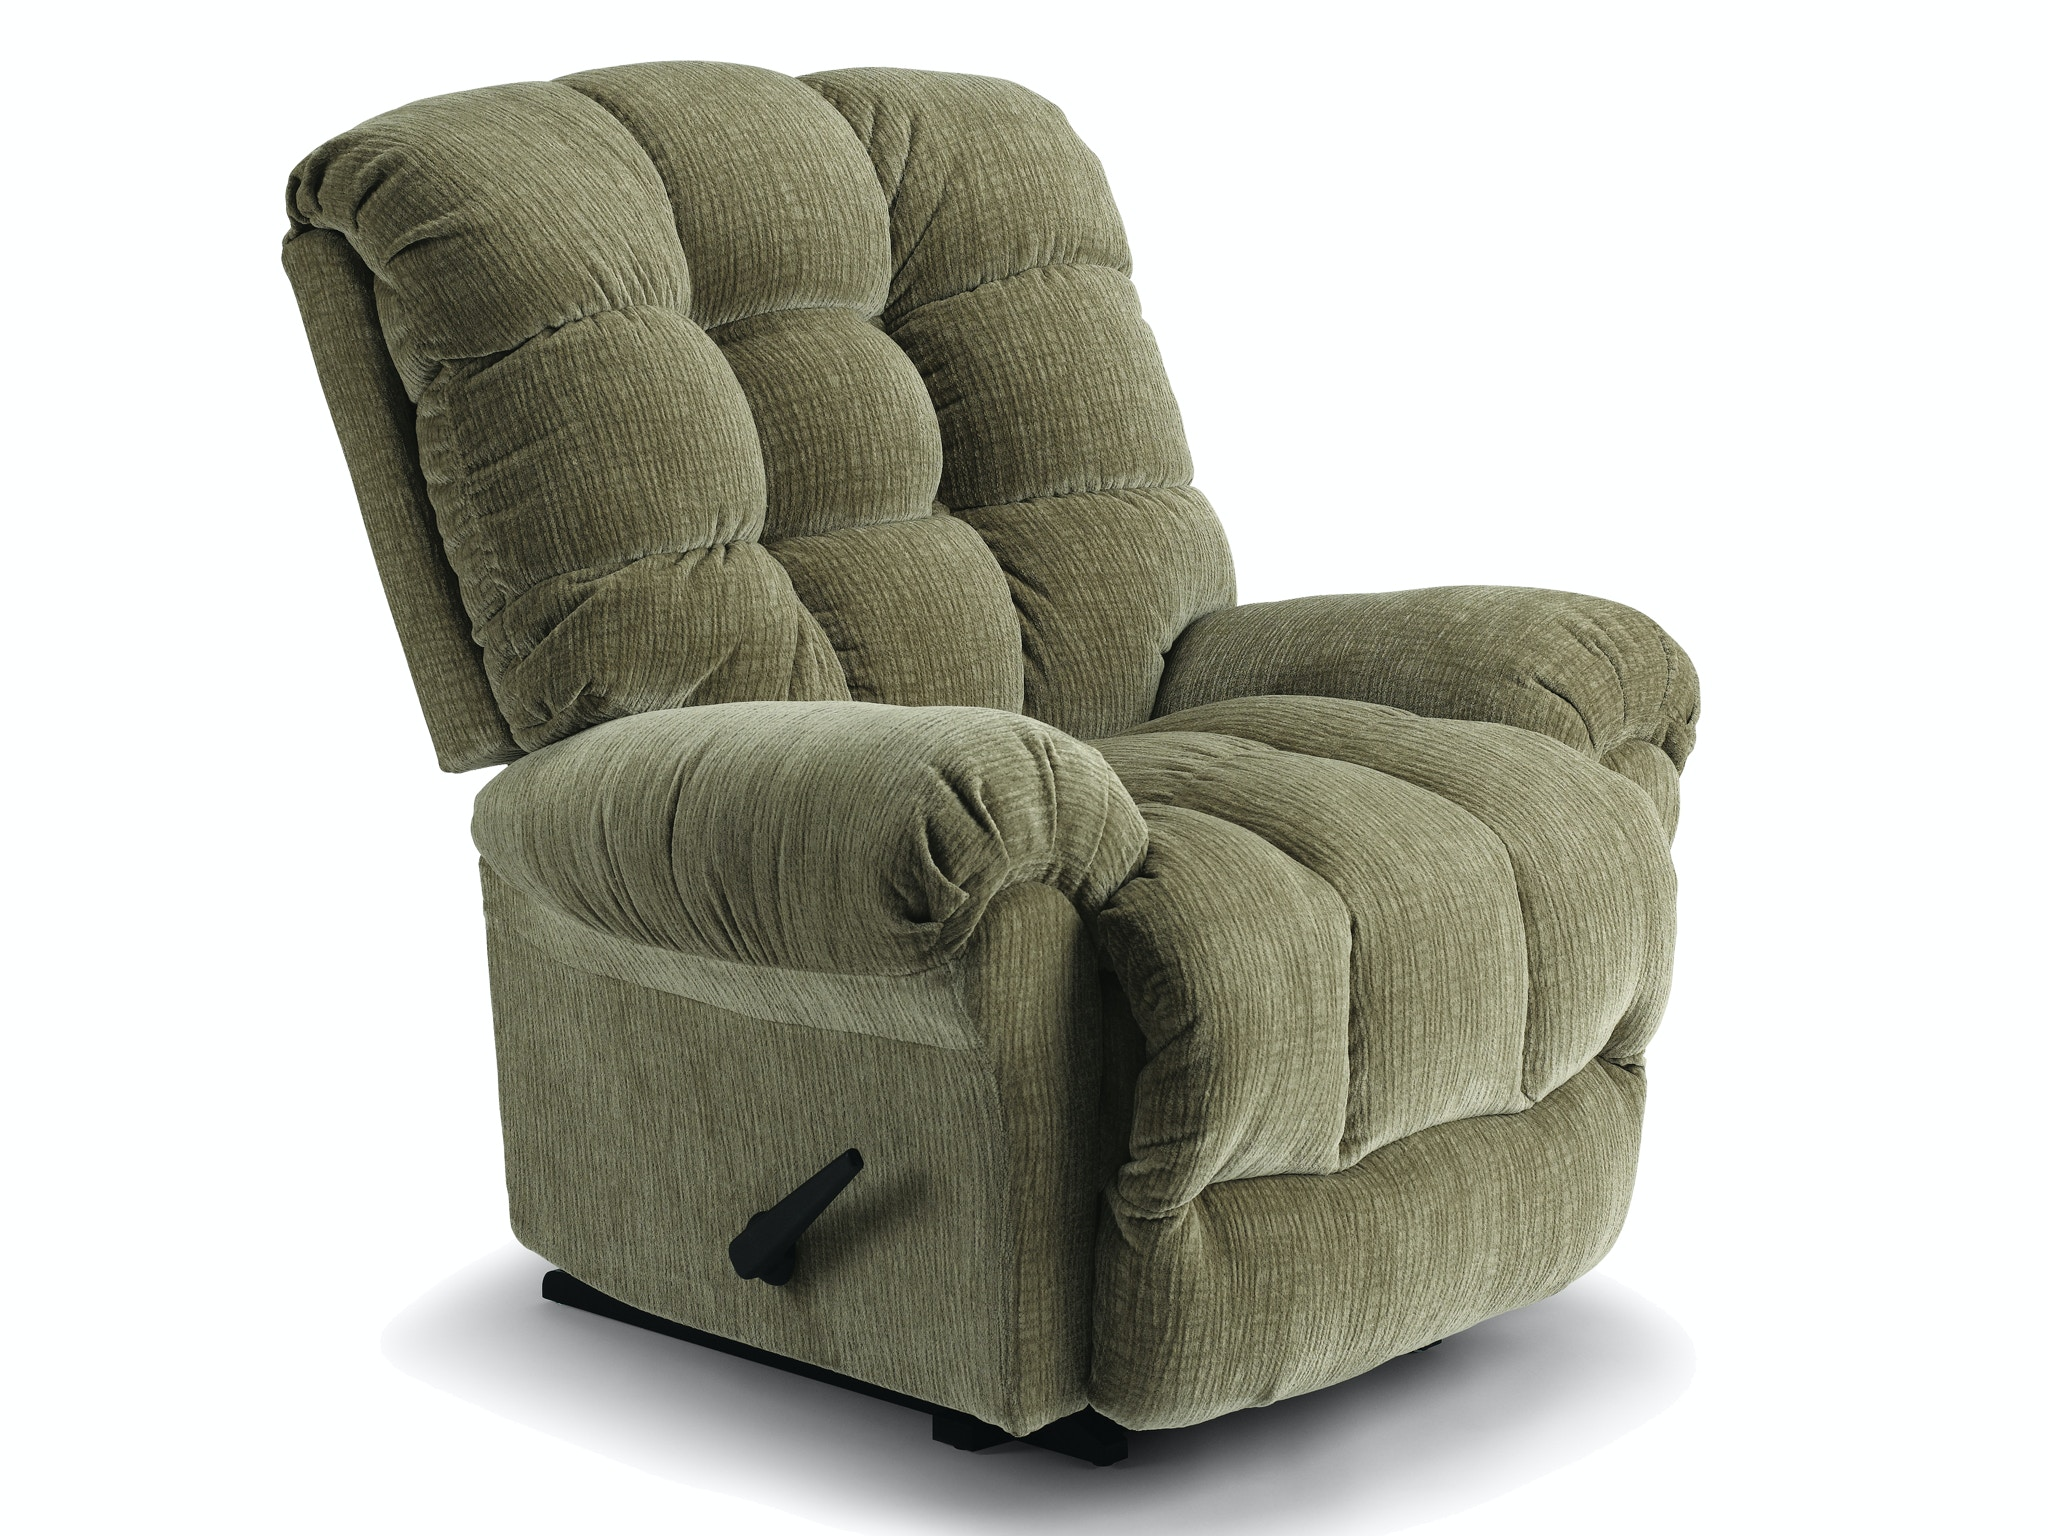 besthf com chairs chair pockets for classrooms denton bodyrest recliner